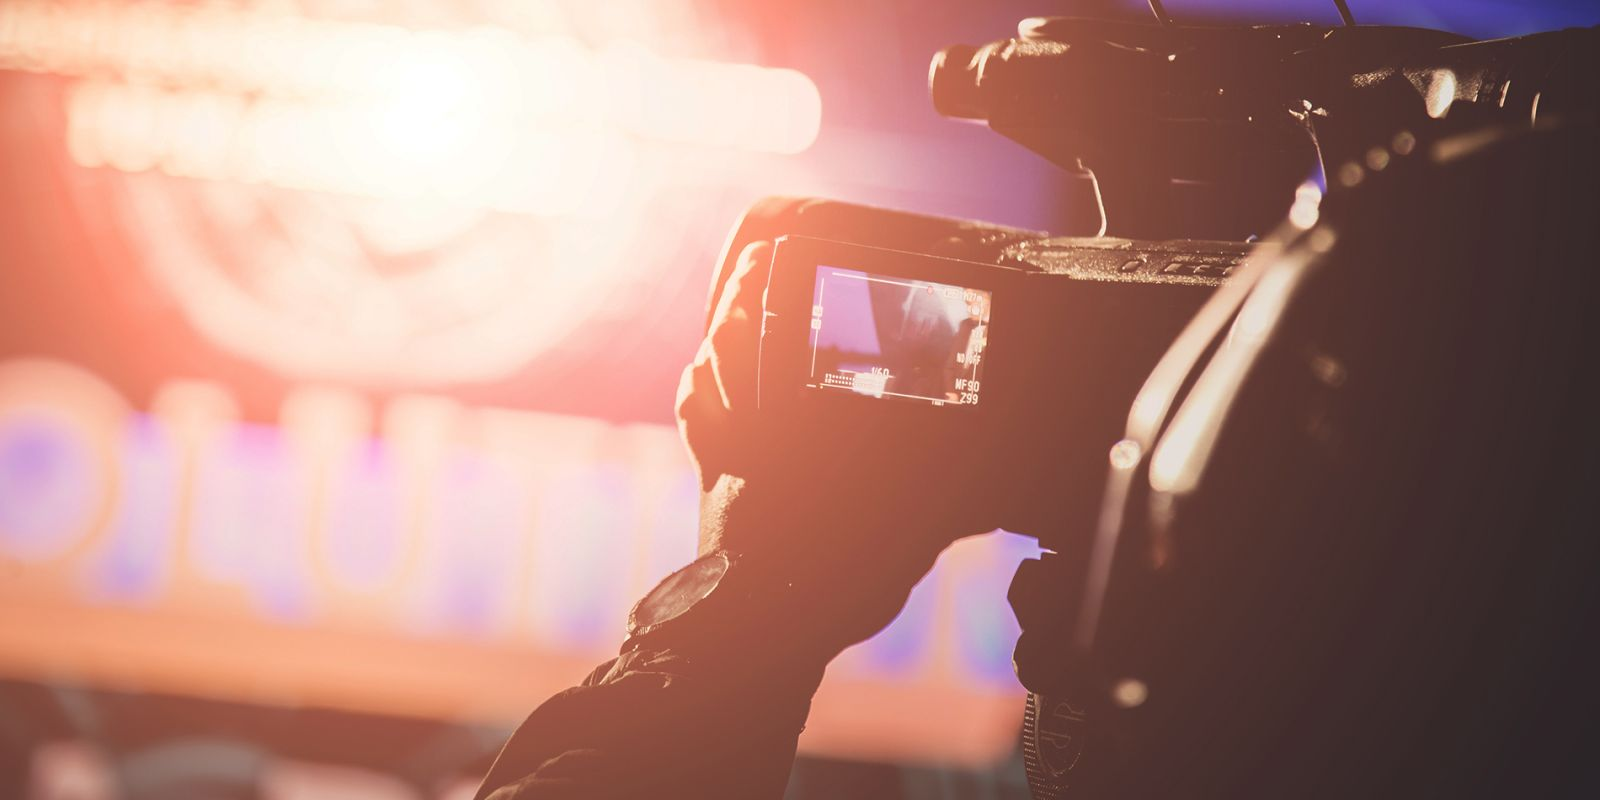 A picture of a large video camera filming something on stage with bright lights, on the conference video production page.